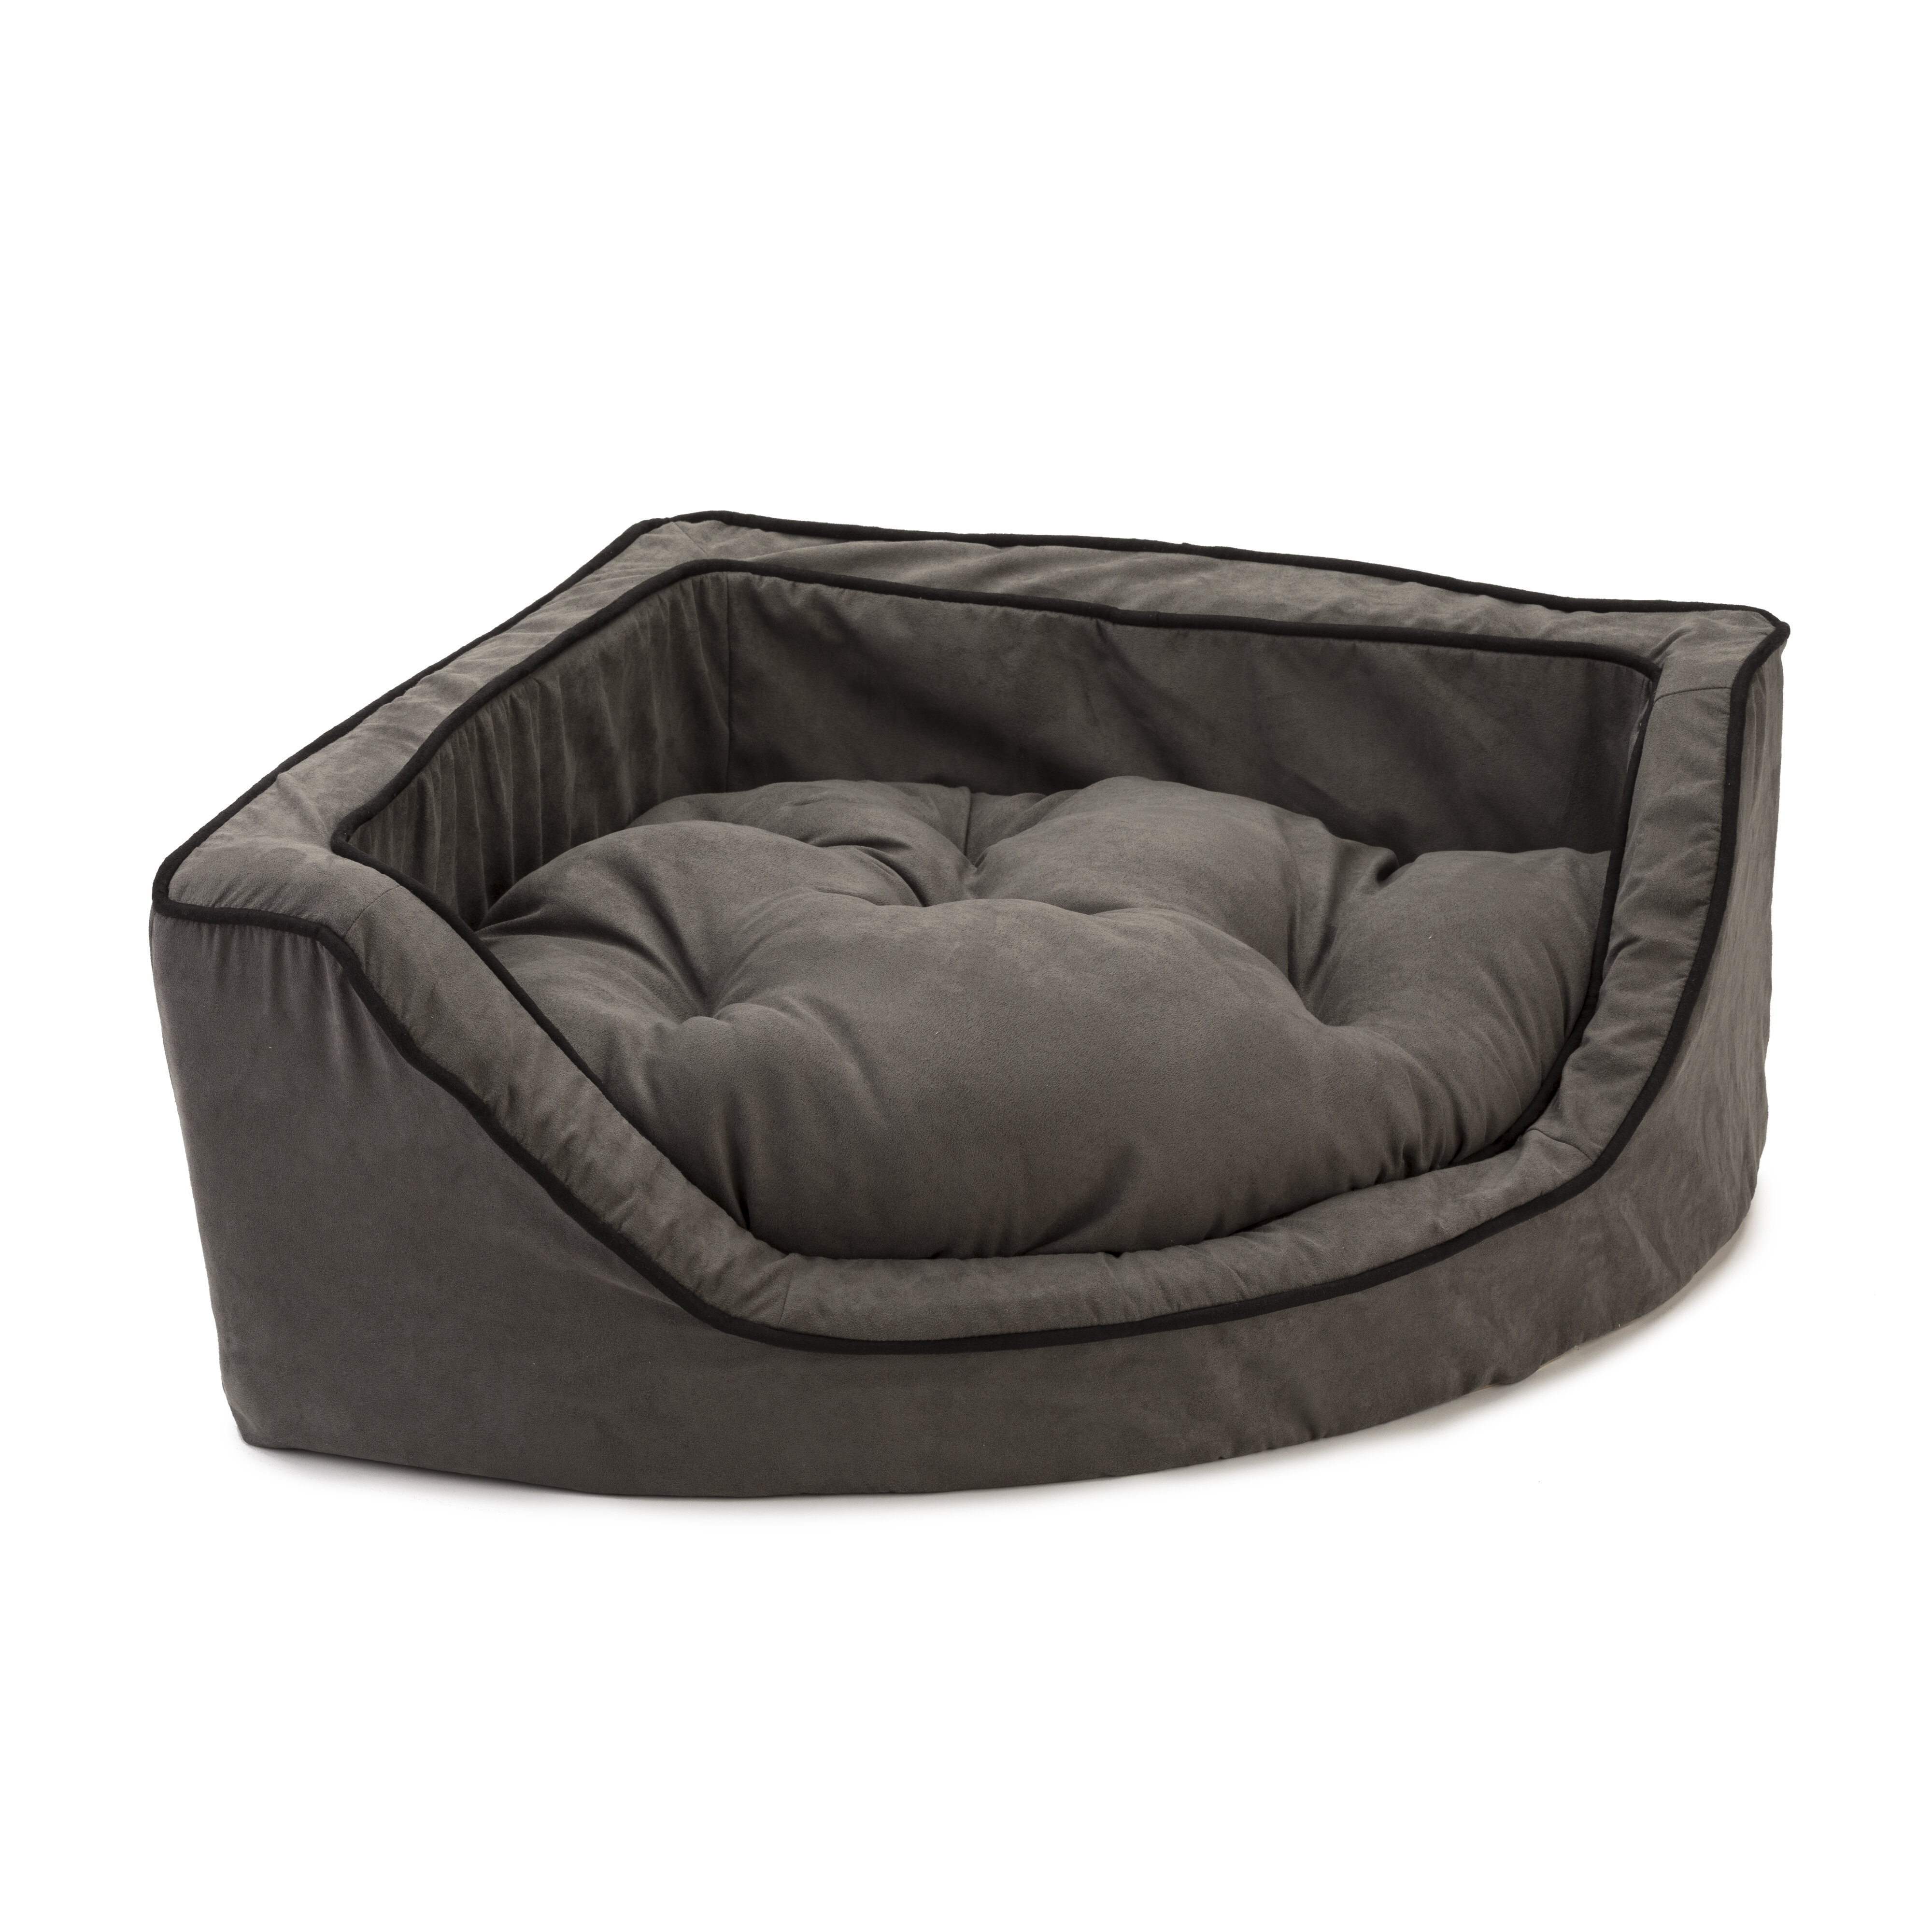 beds by leather hamptonbrown luxury dog hampton chester wells brown and bed